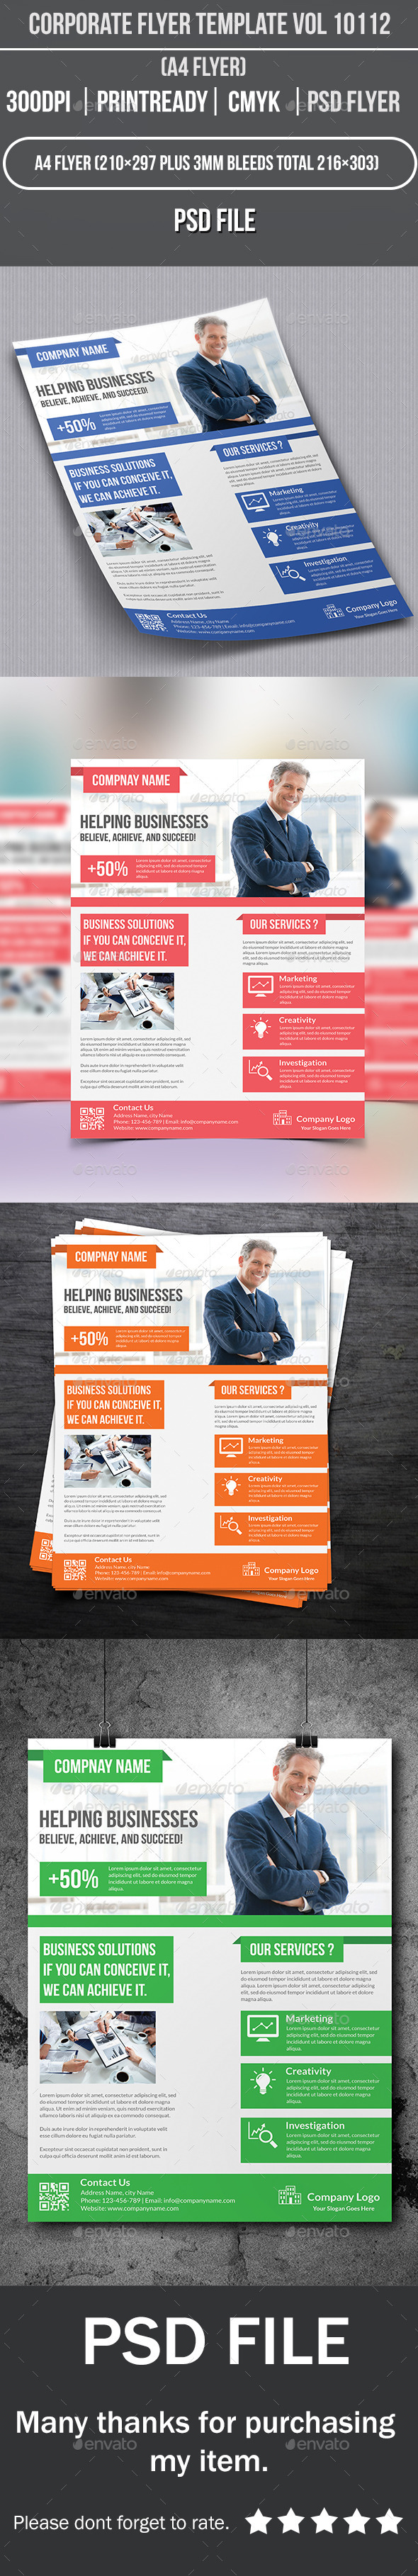 GraphicRiver Corporate Flyer Template Vol 10112 10160651